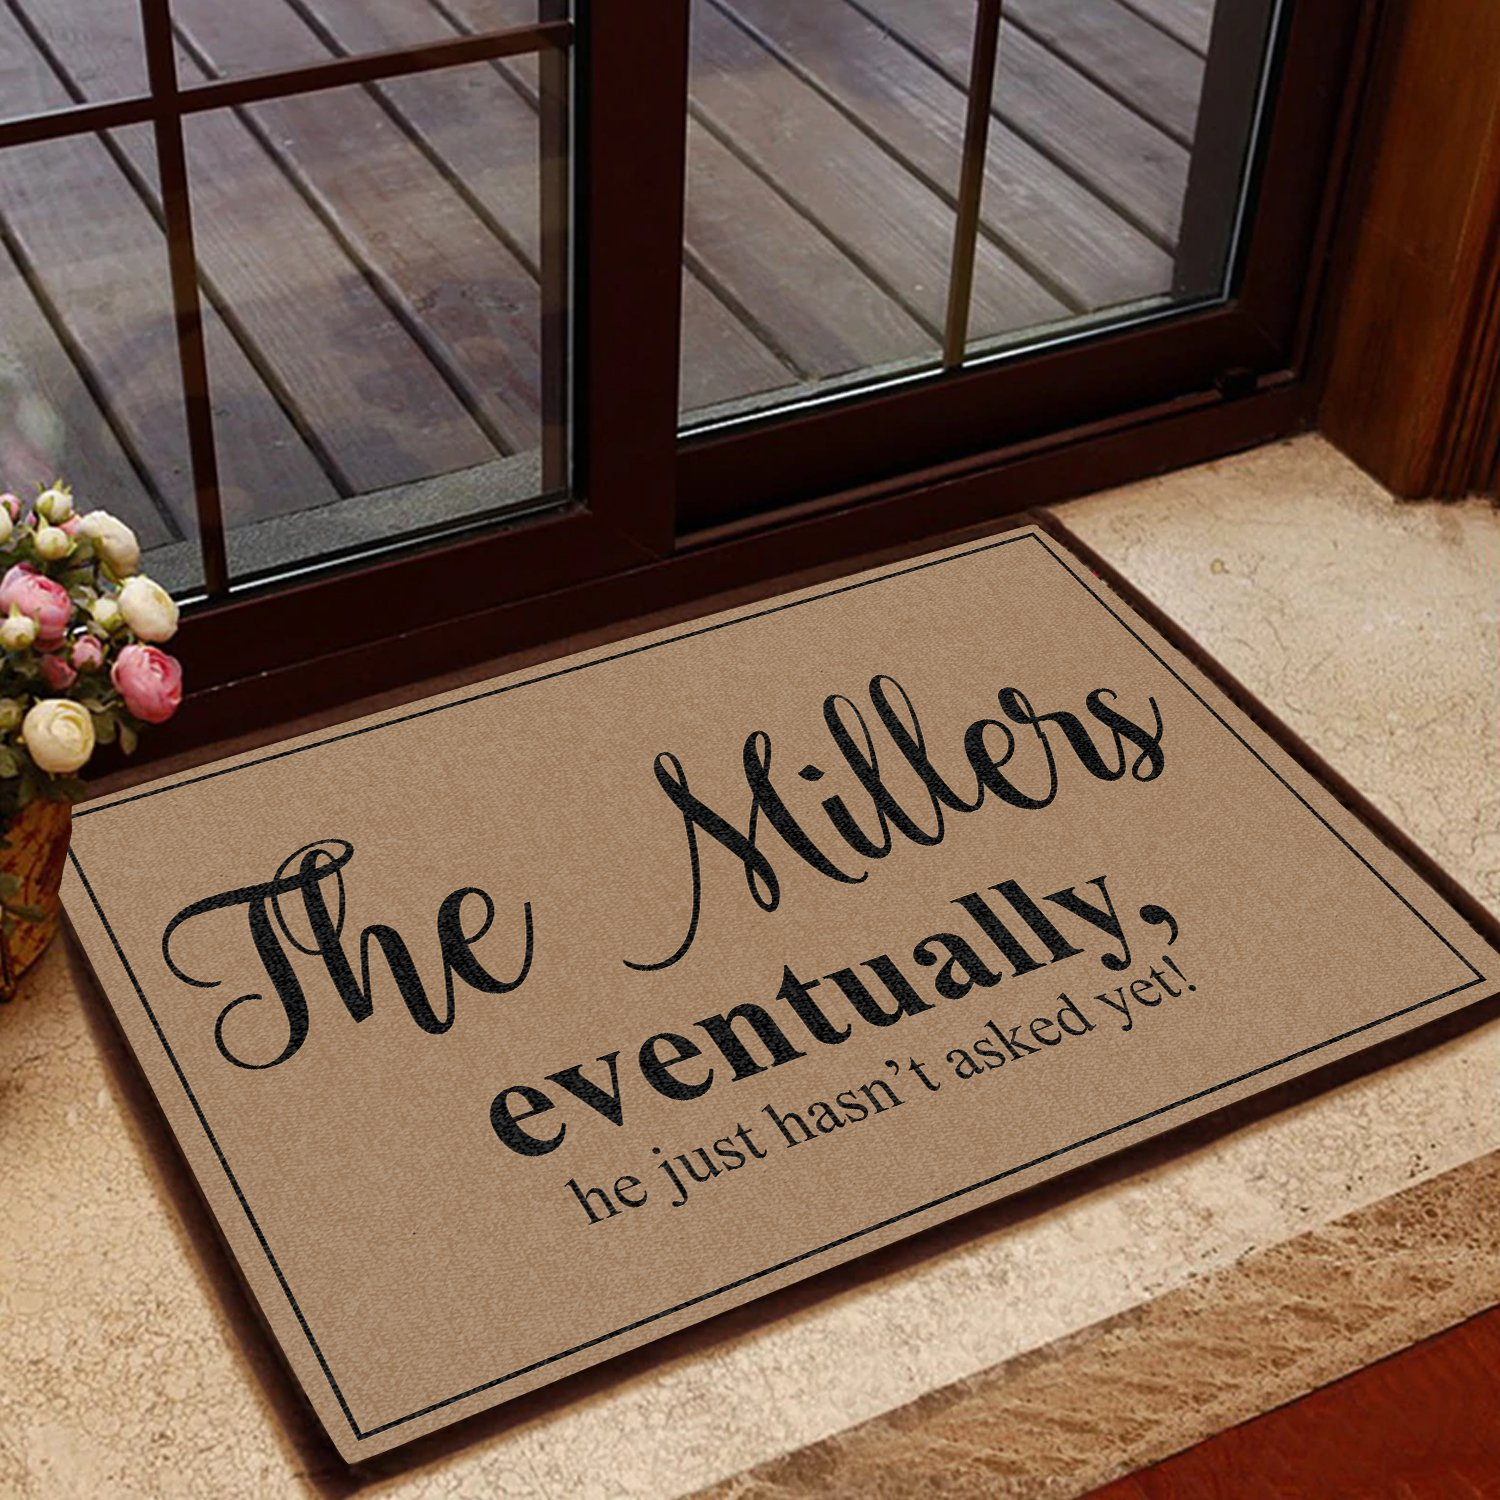 the millers eventually he just hasnt asked yet doormat 1